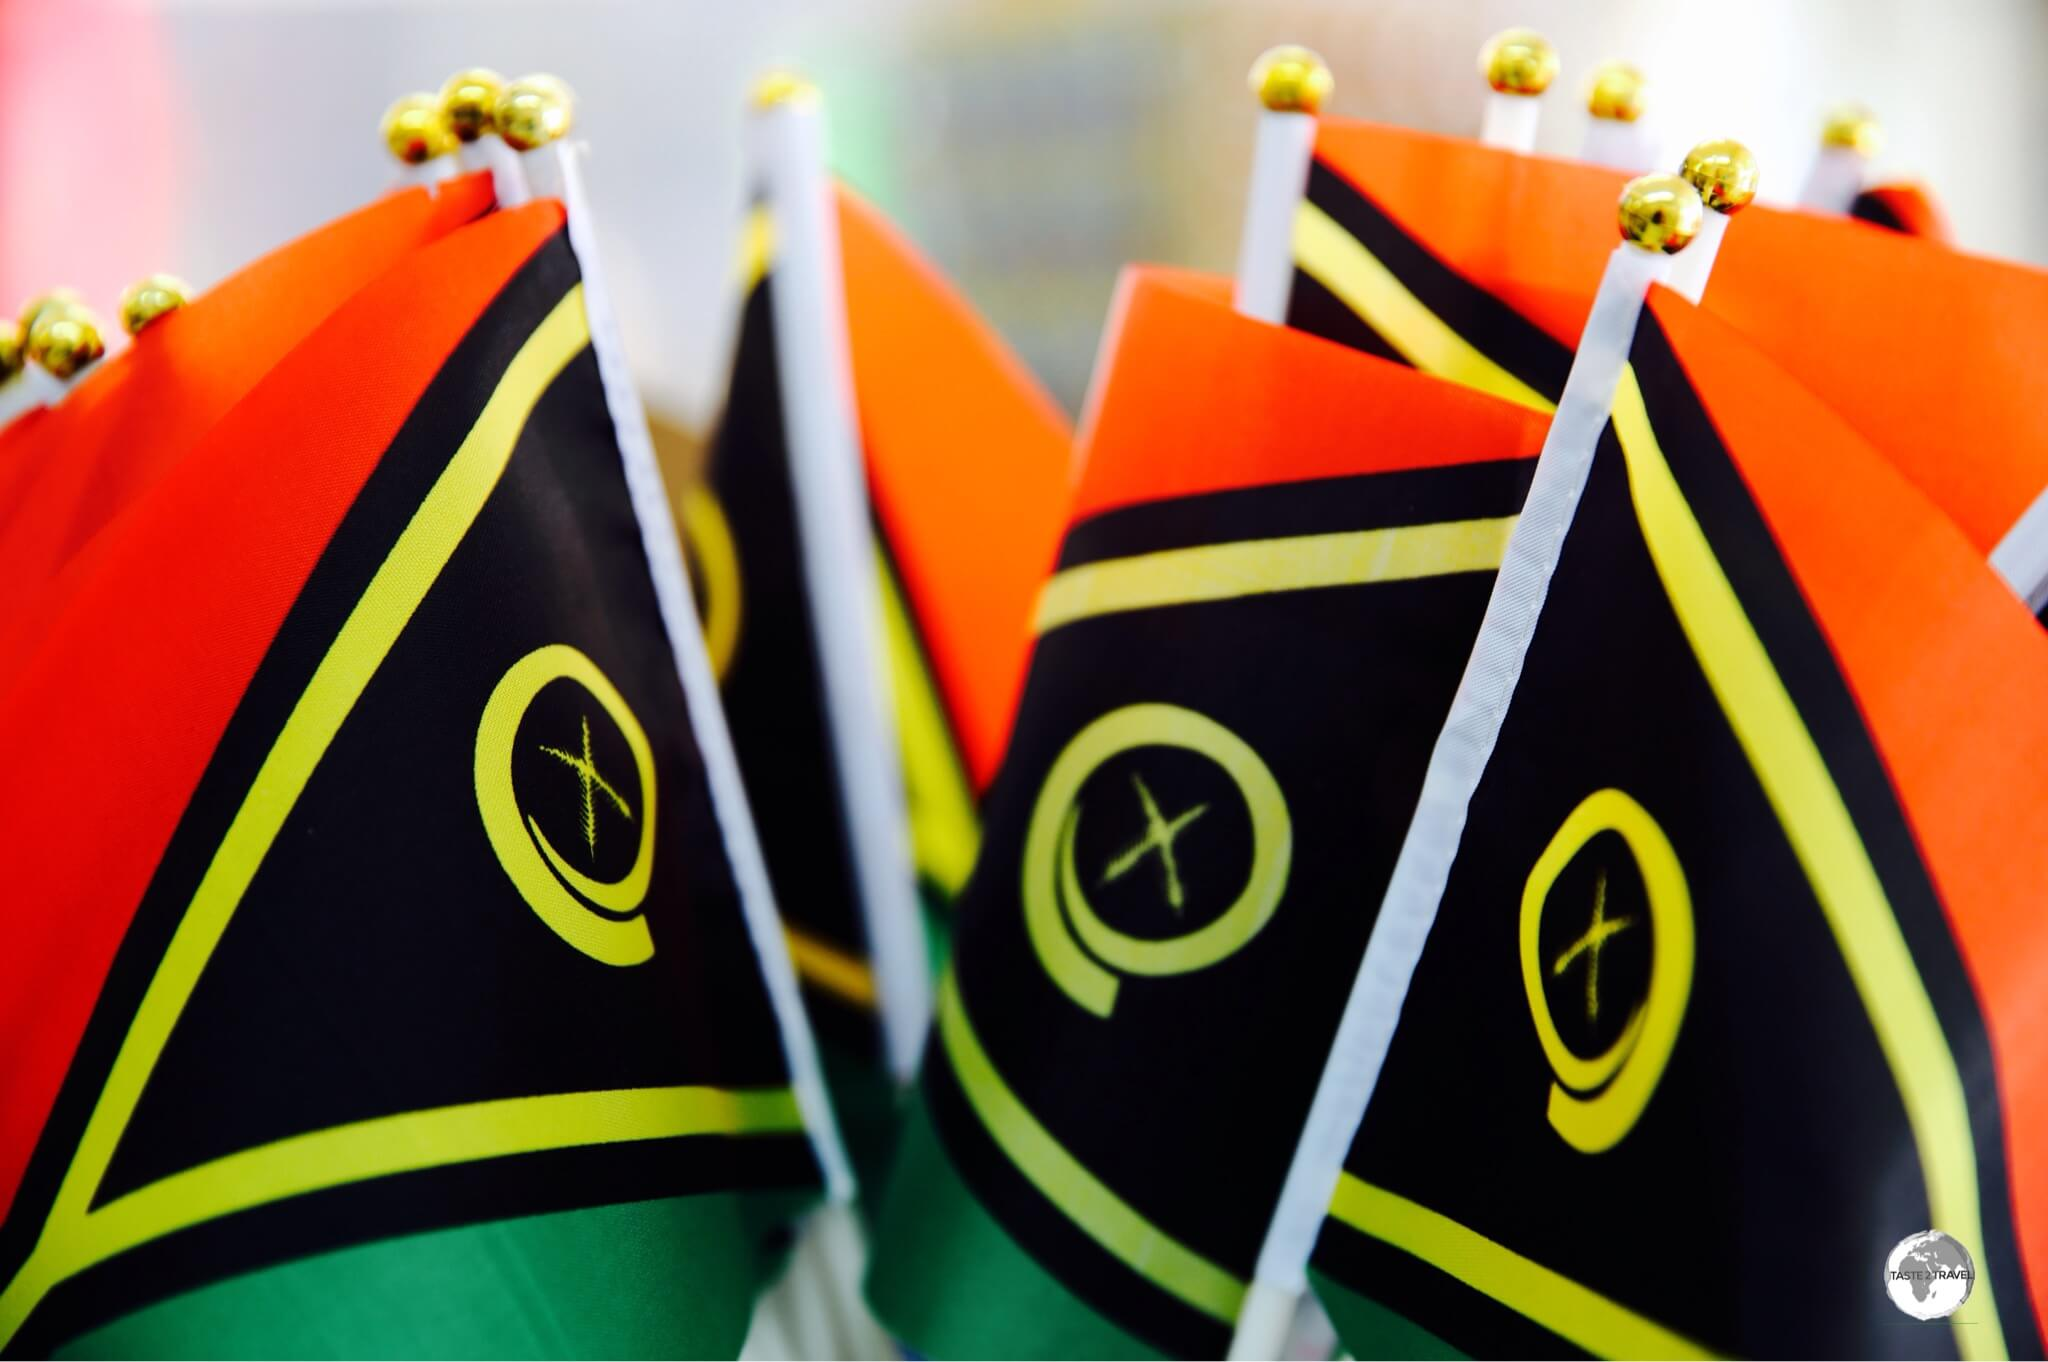 The flag of Vanuatu features a pig's tusk which is deemed sacred and was traditionally used as a form of currency.